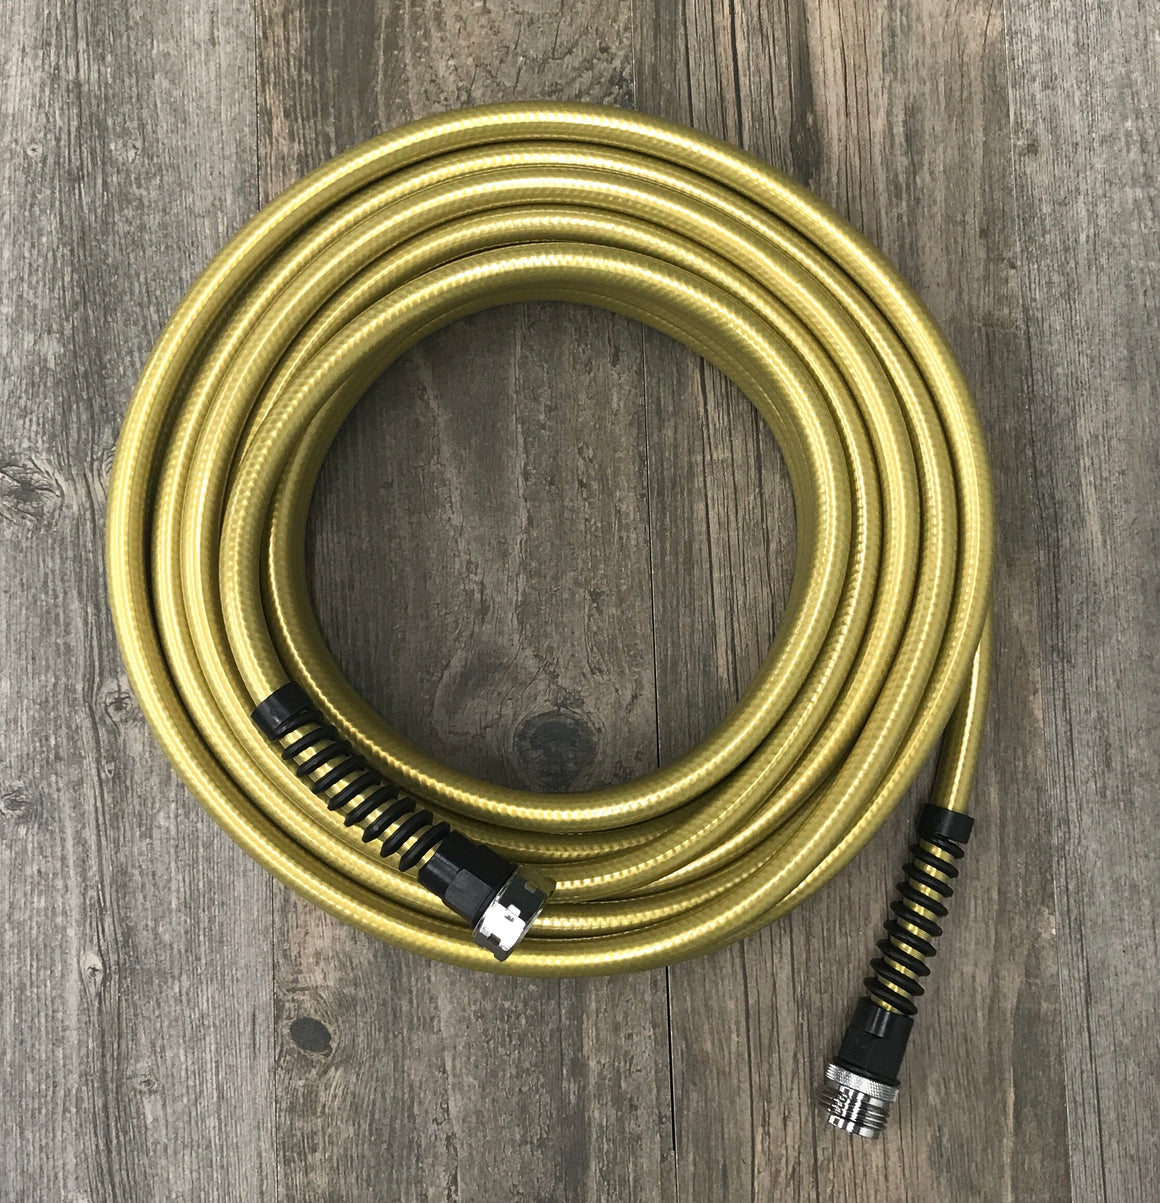 "400 Series 7/16"" Slim & Light Polyurethane Garden Hose - Cool Metallic Colors - 30% Off"